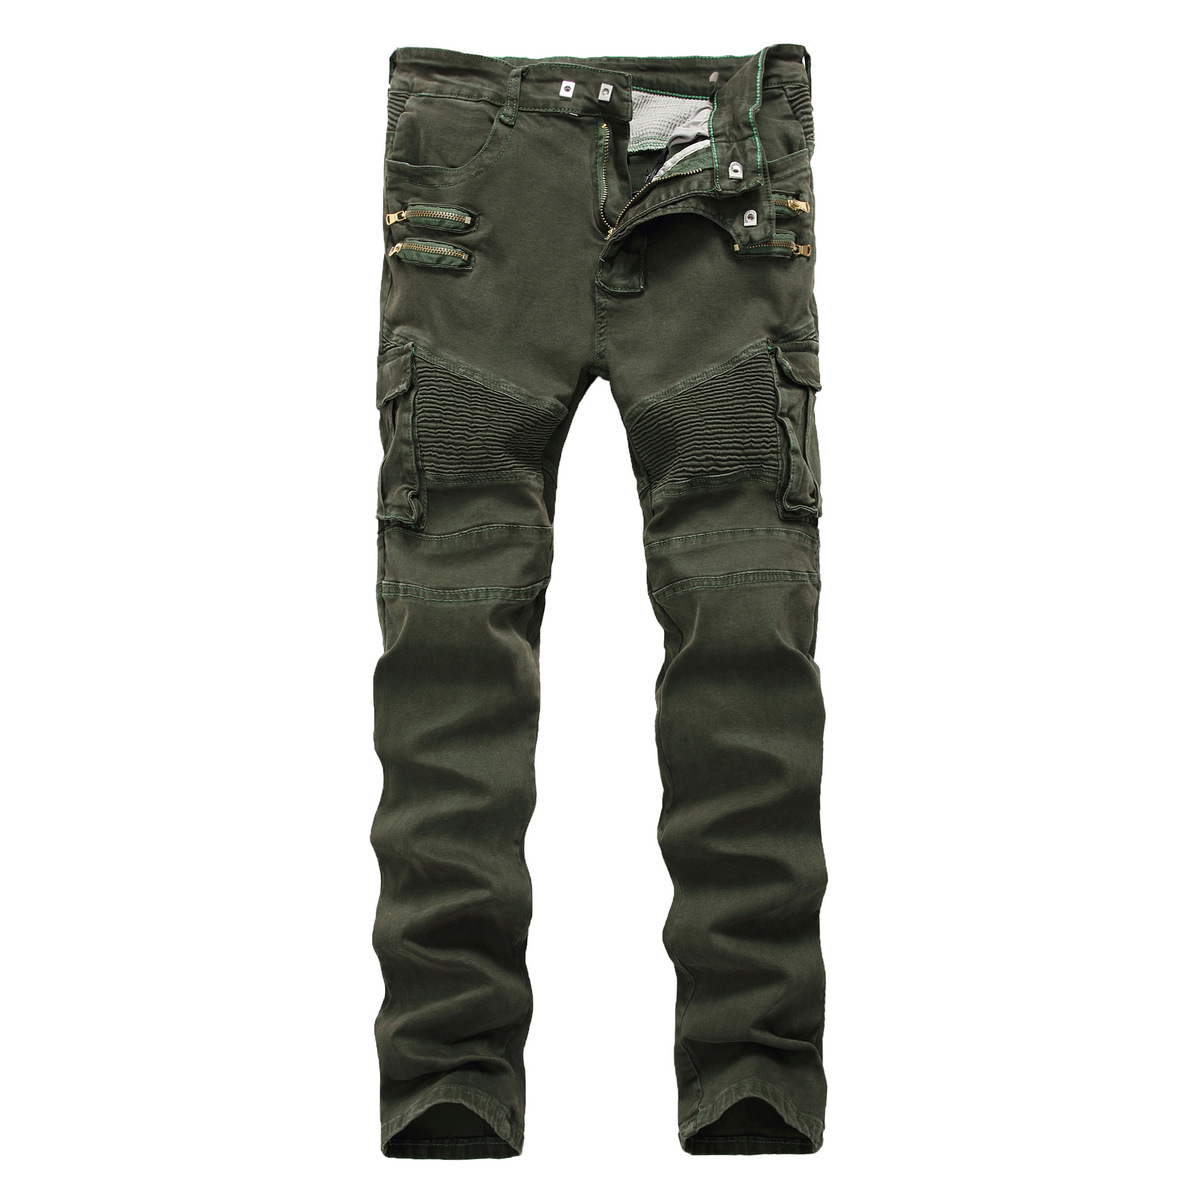 2019 New Men's Army Green Designer Jeans Fashion Personality Straight Tube Waist Multi-pocket Zipper Pants.